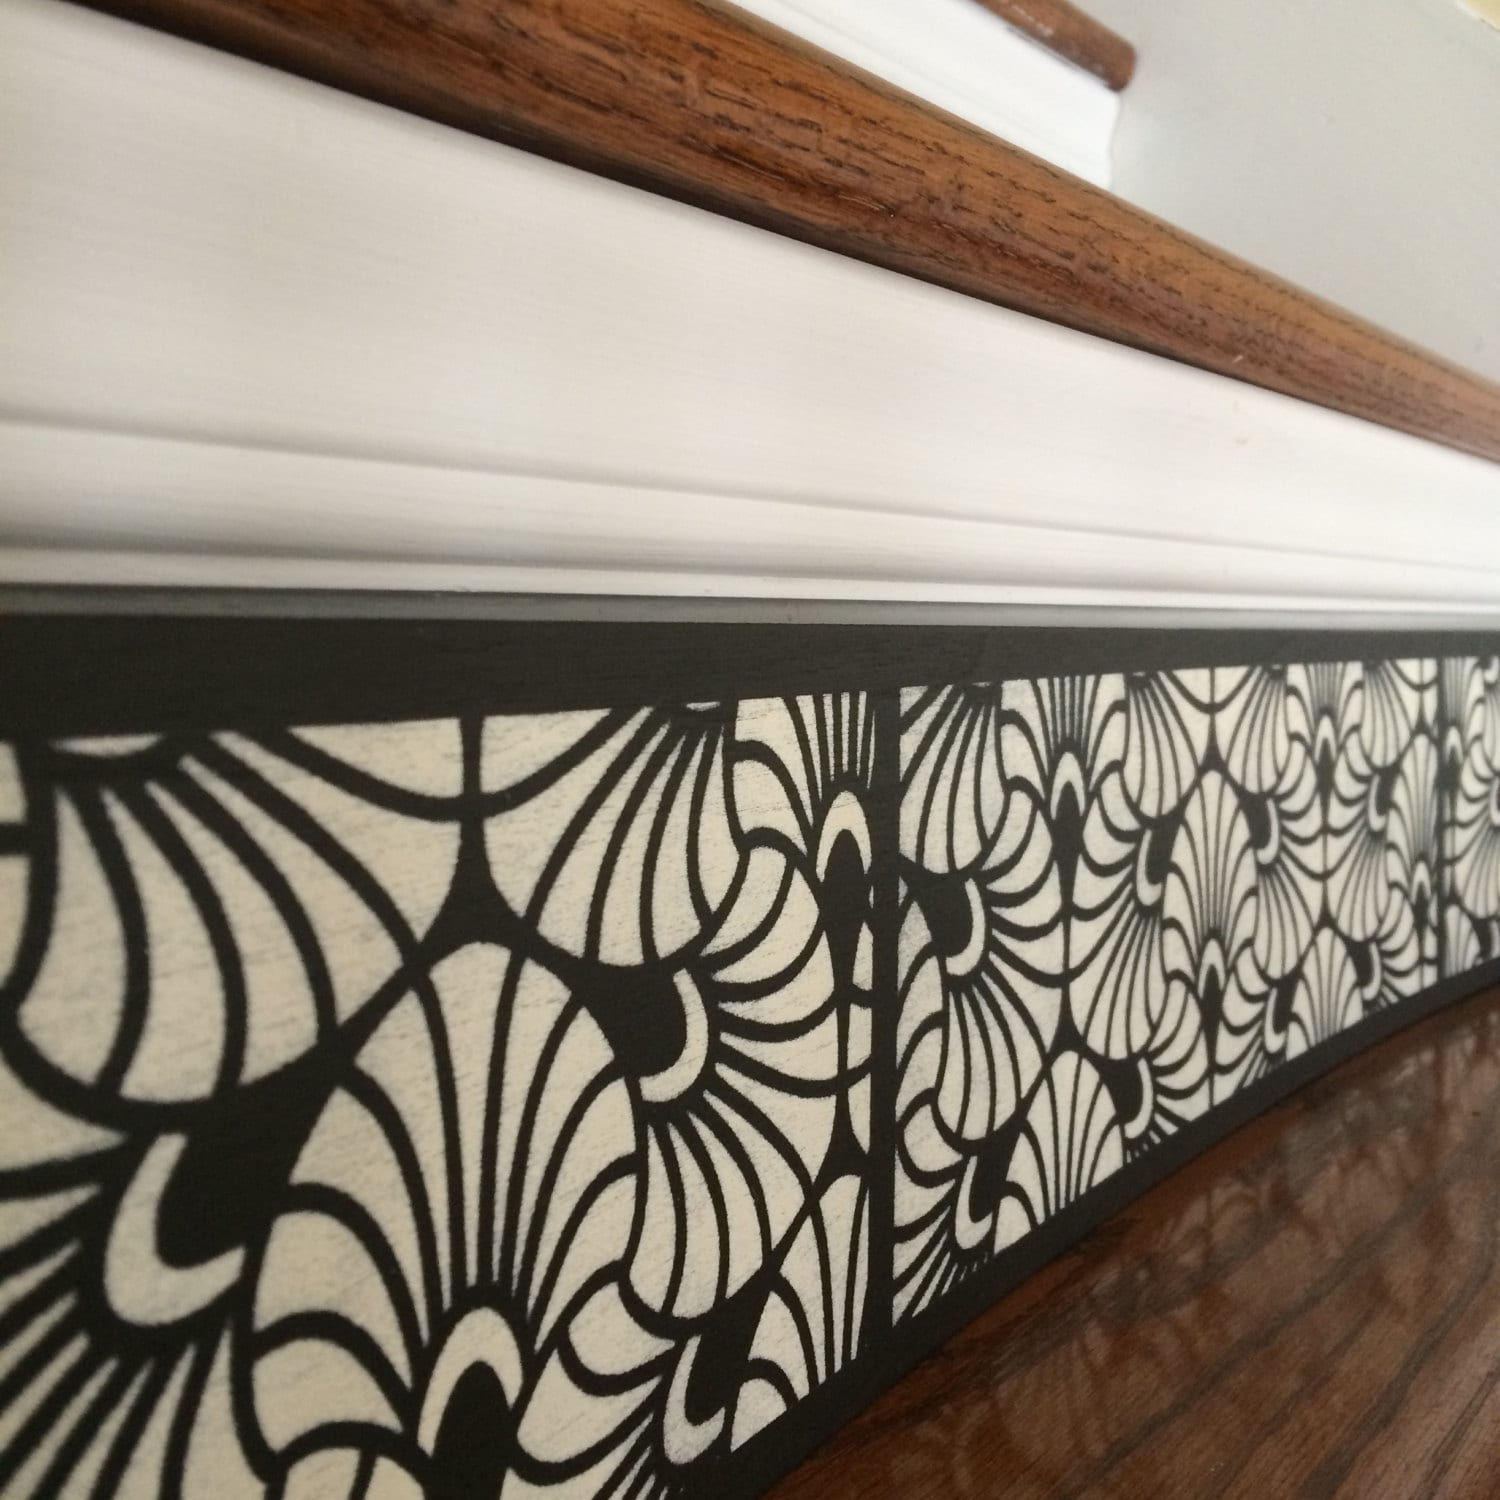 Stair Risers Instead of Stair Riser Decals Stair Stickers or